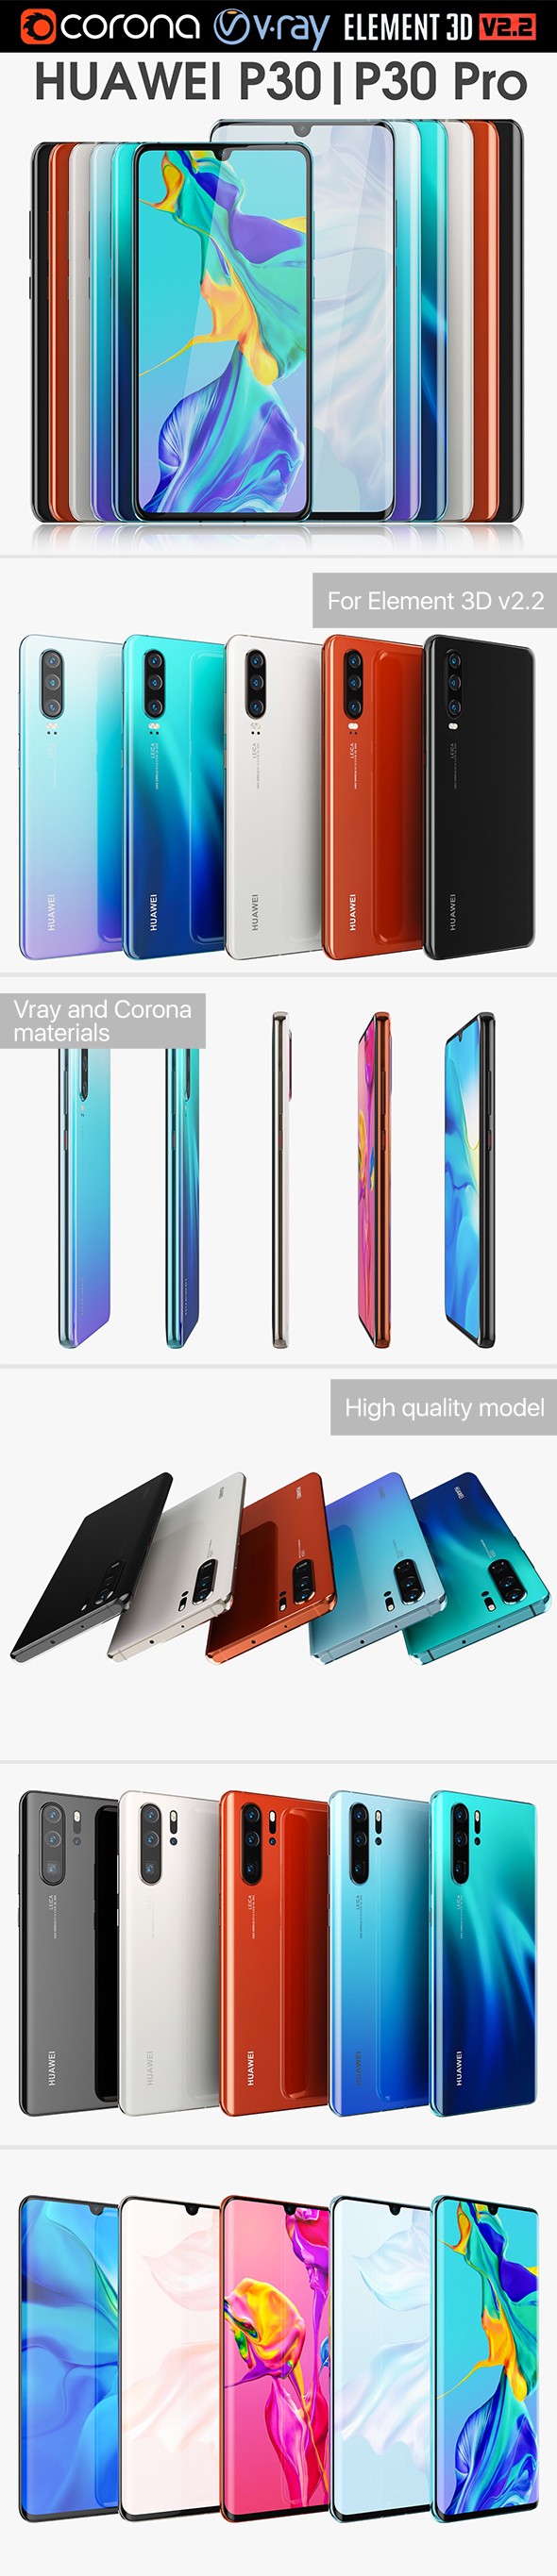 Huawei P30 and P30 Pro Collection